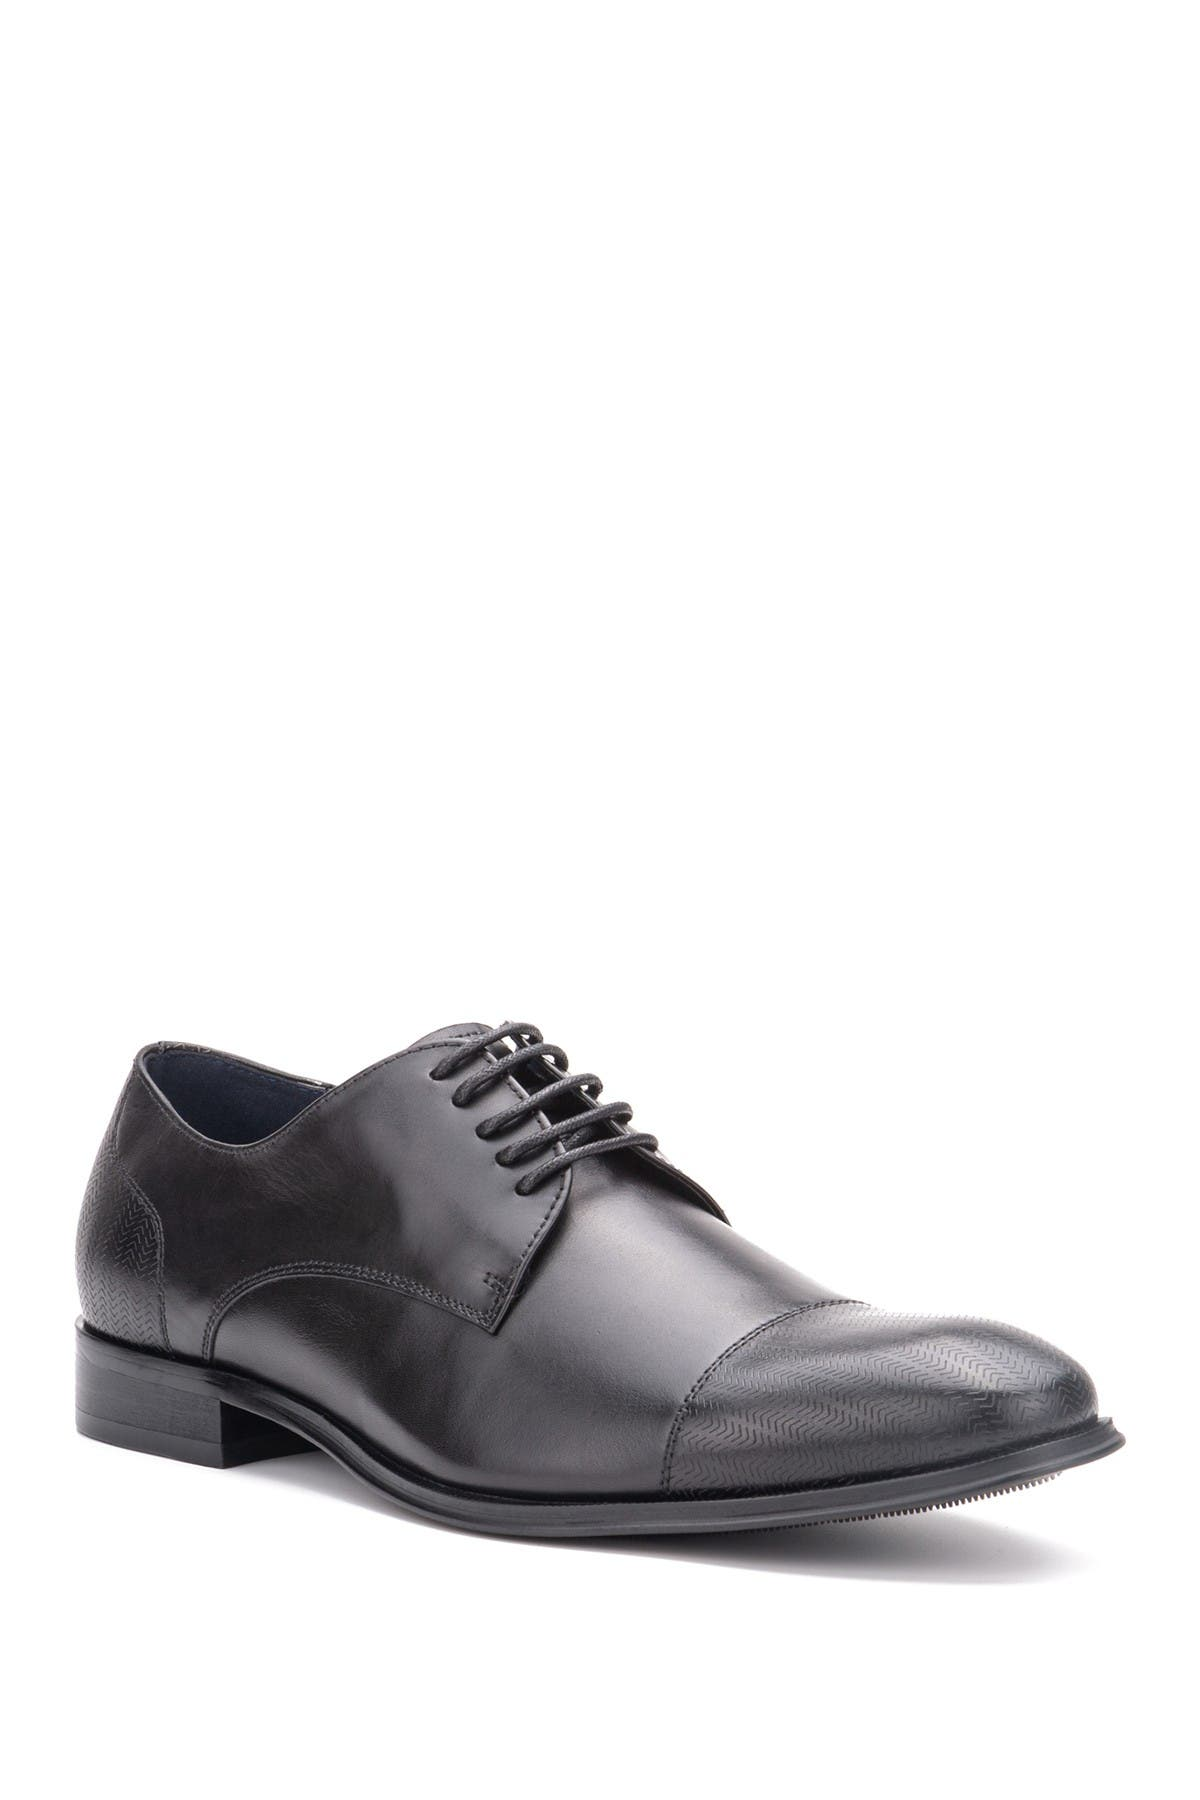 Image of Vintage Foundry Radcliff Cap Toe Leather Derby